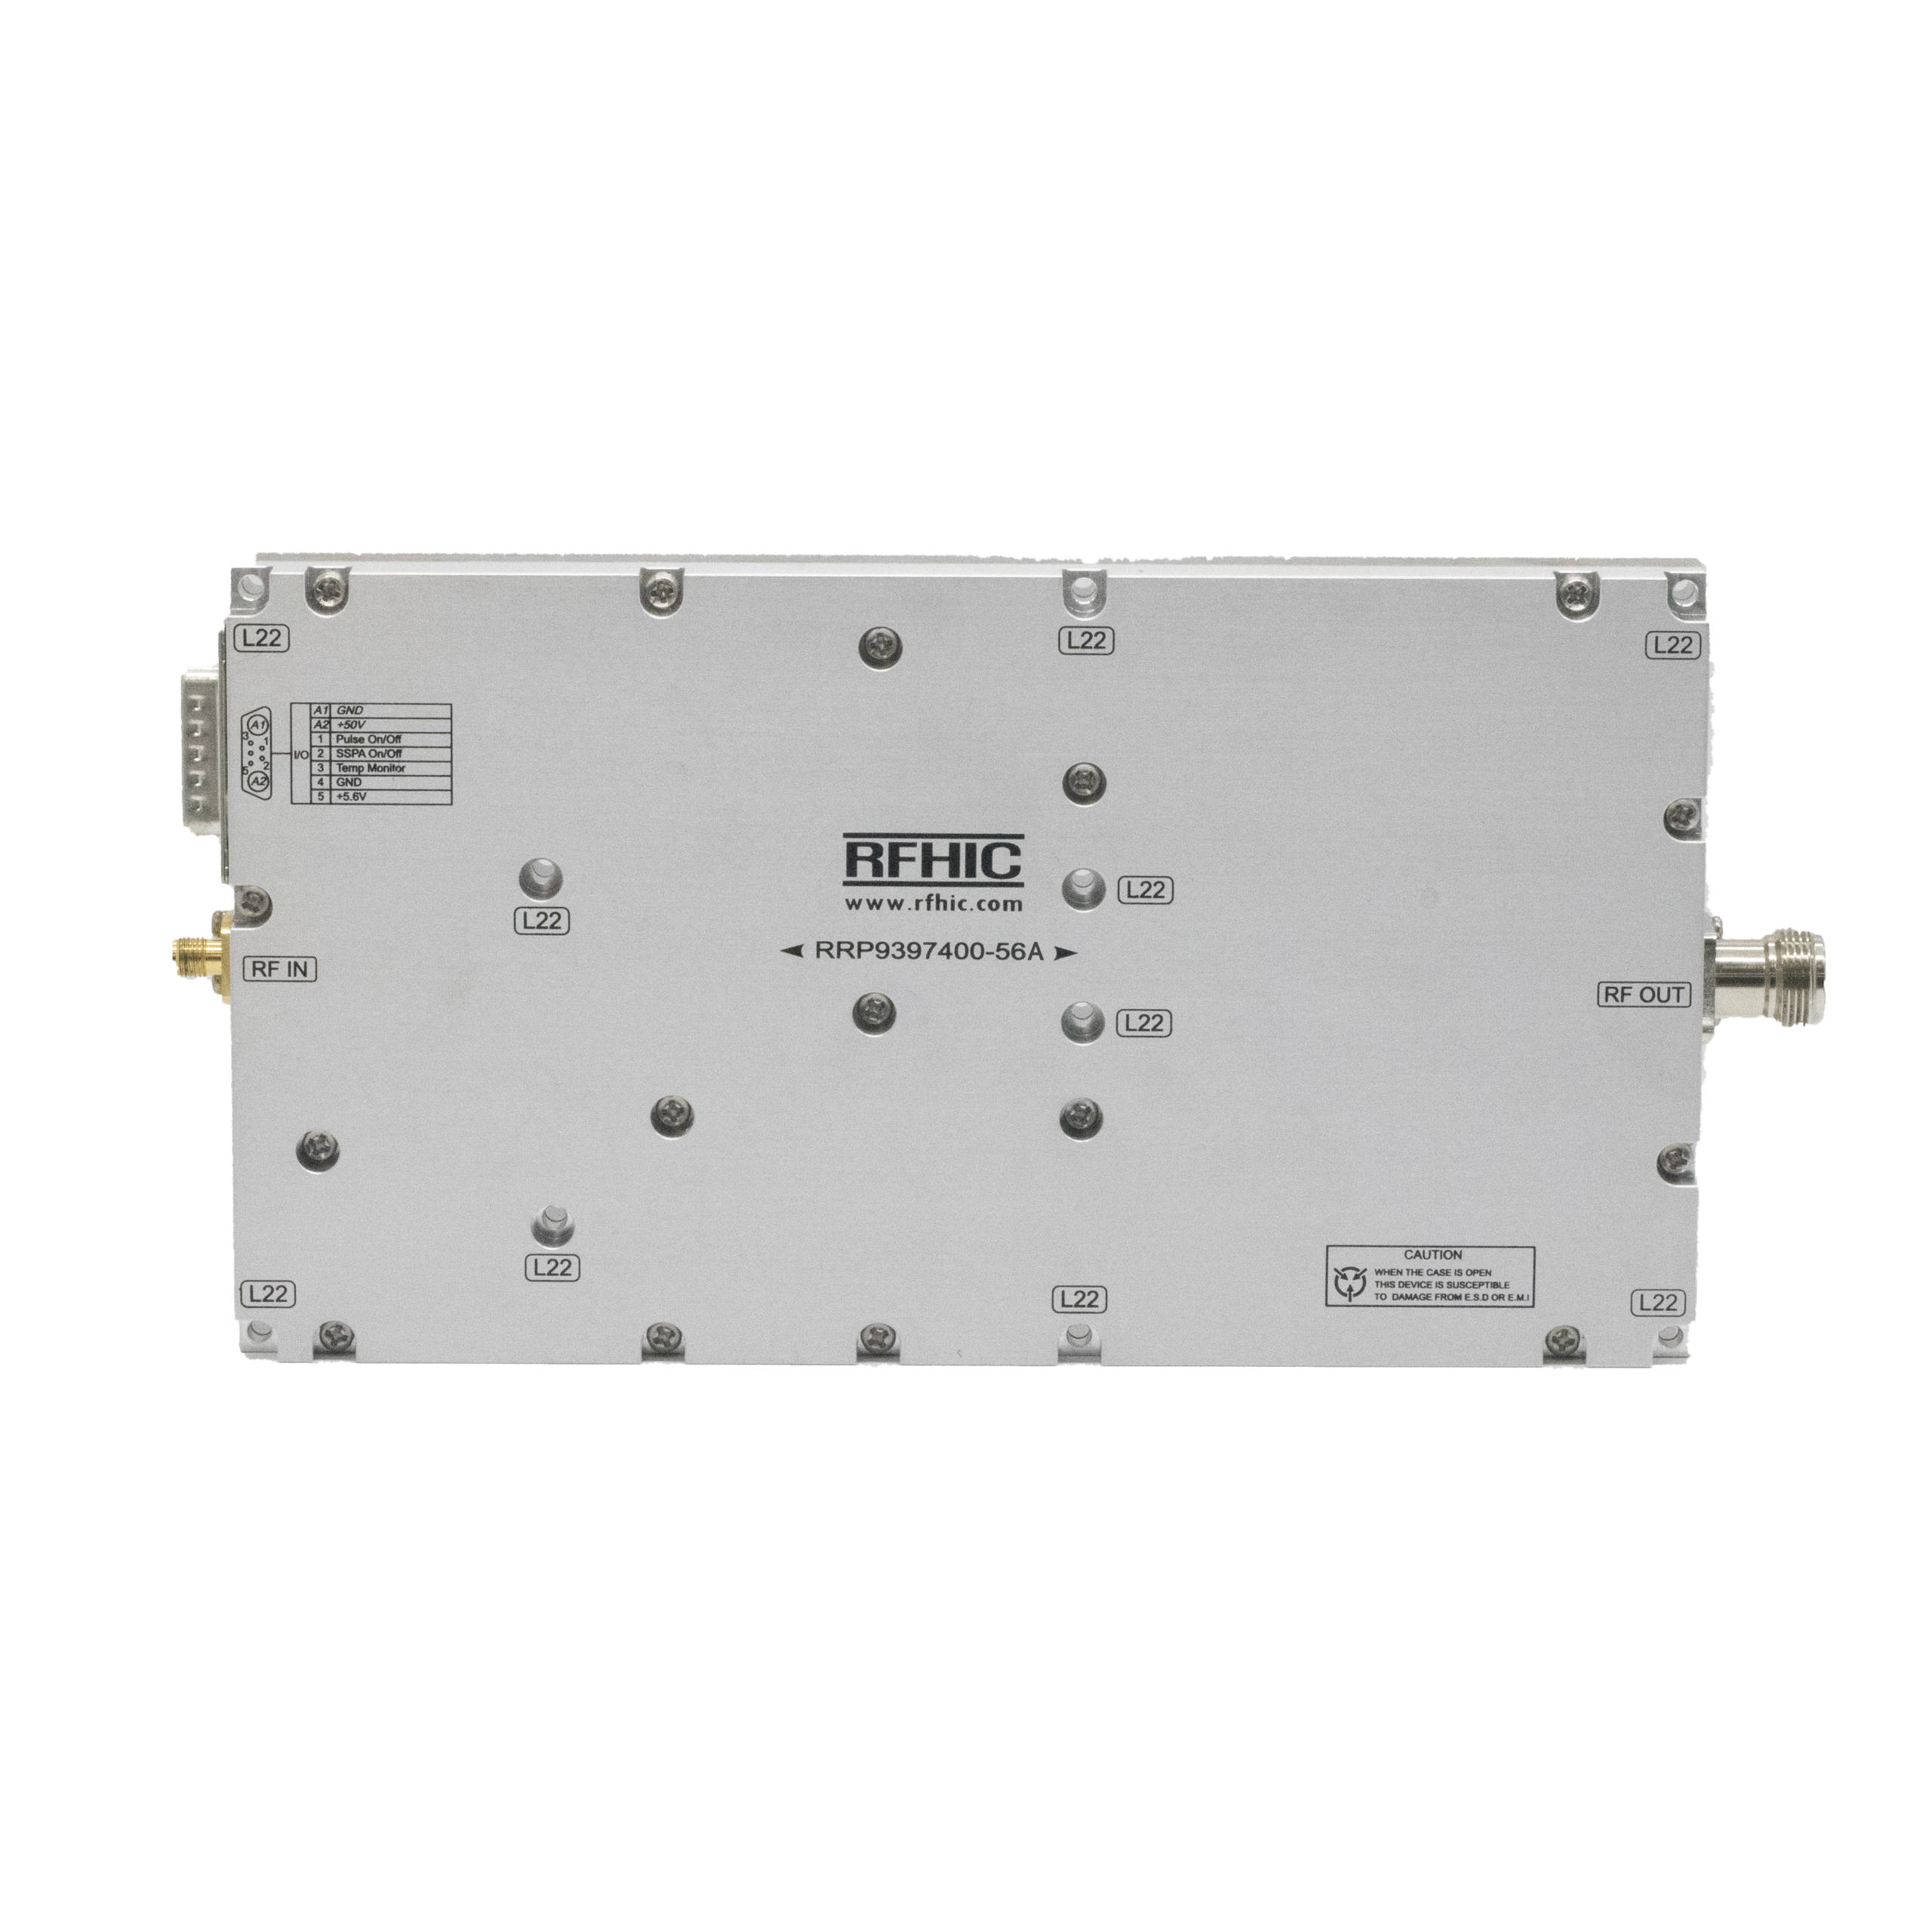 400W, X-band GaN Solid State Power Amplifier